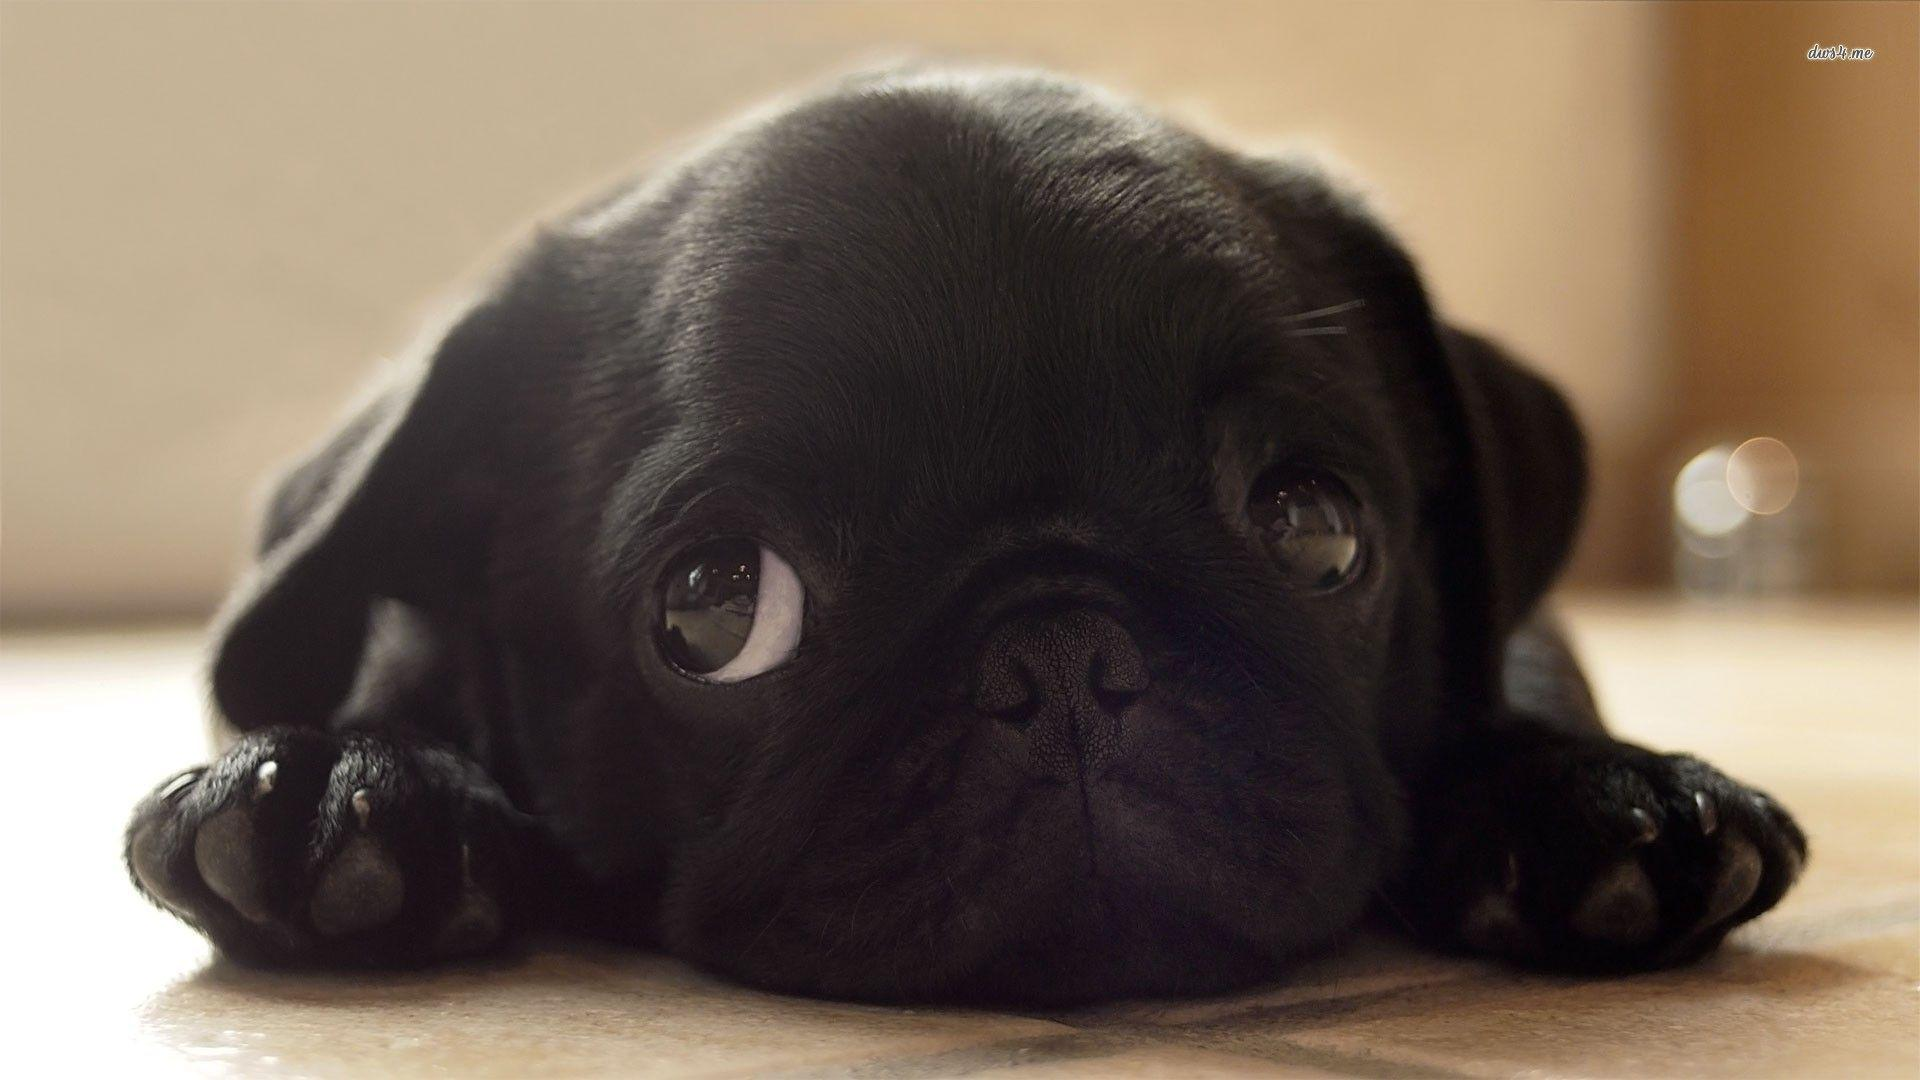 Pug Puppy Wallpapers - Wallpaper Cave